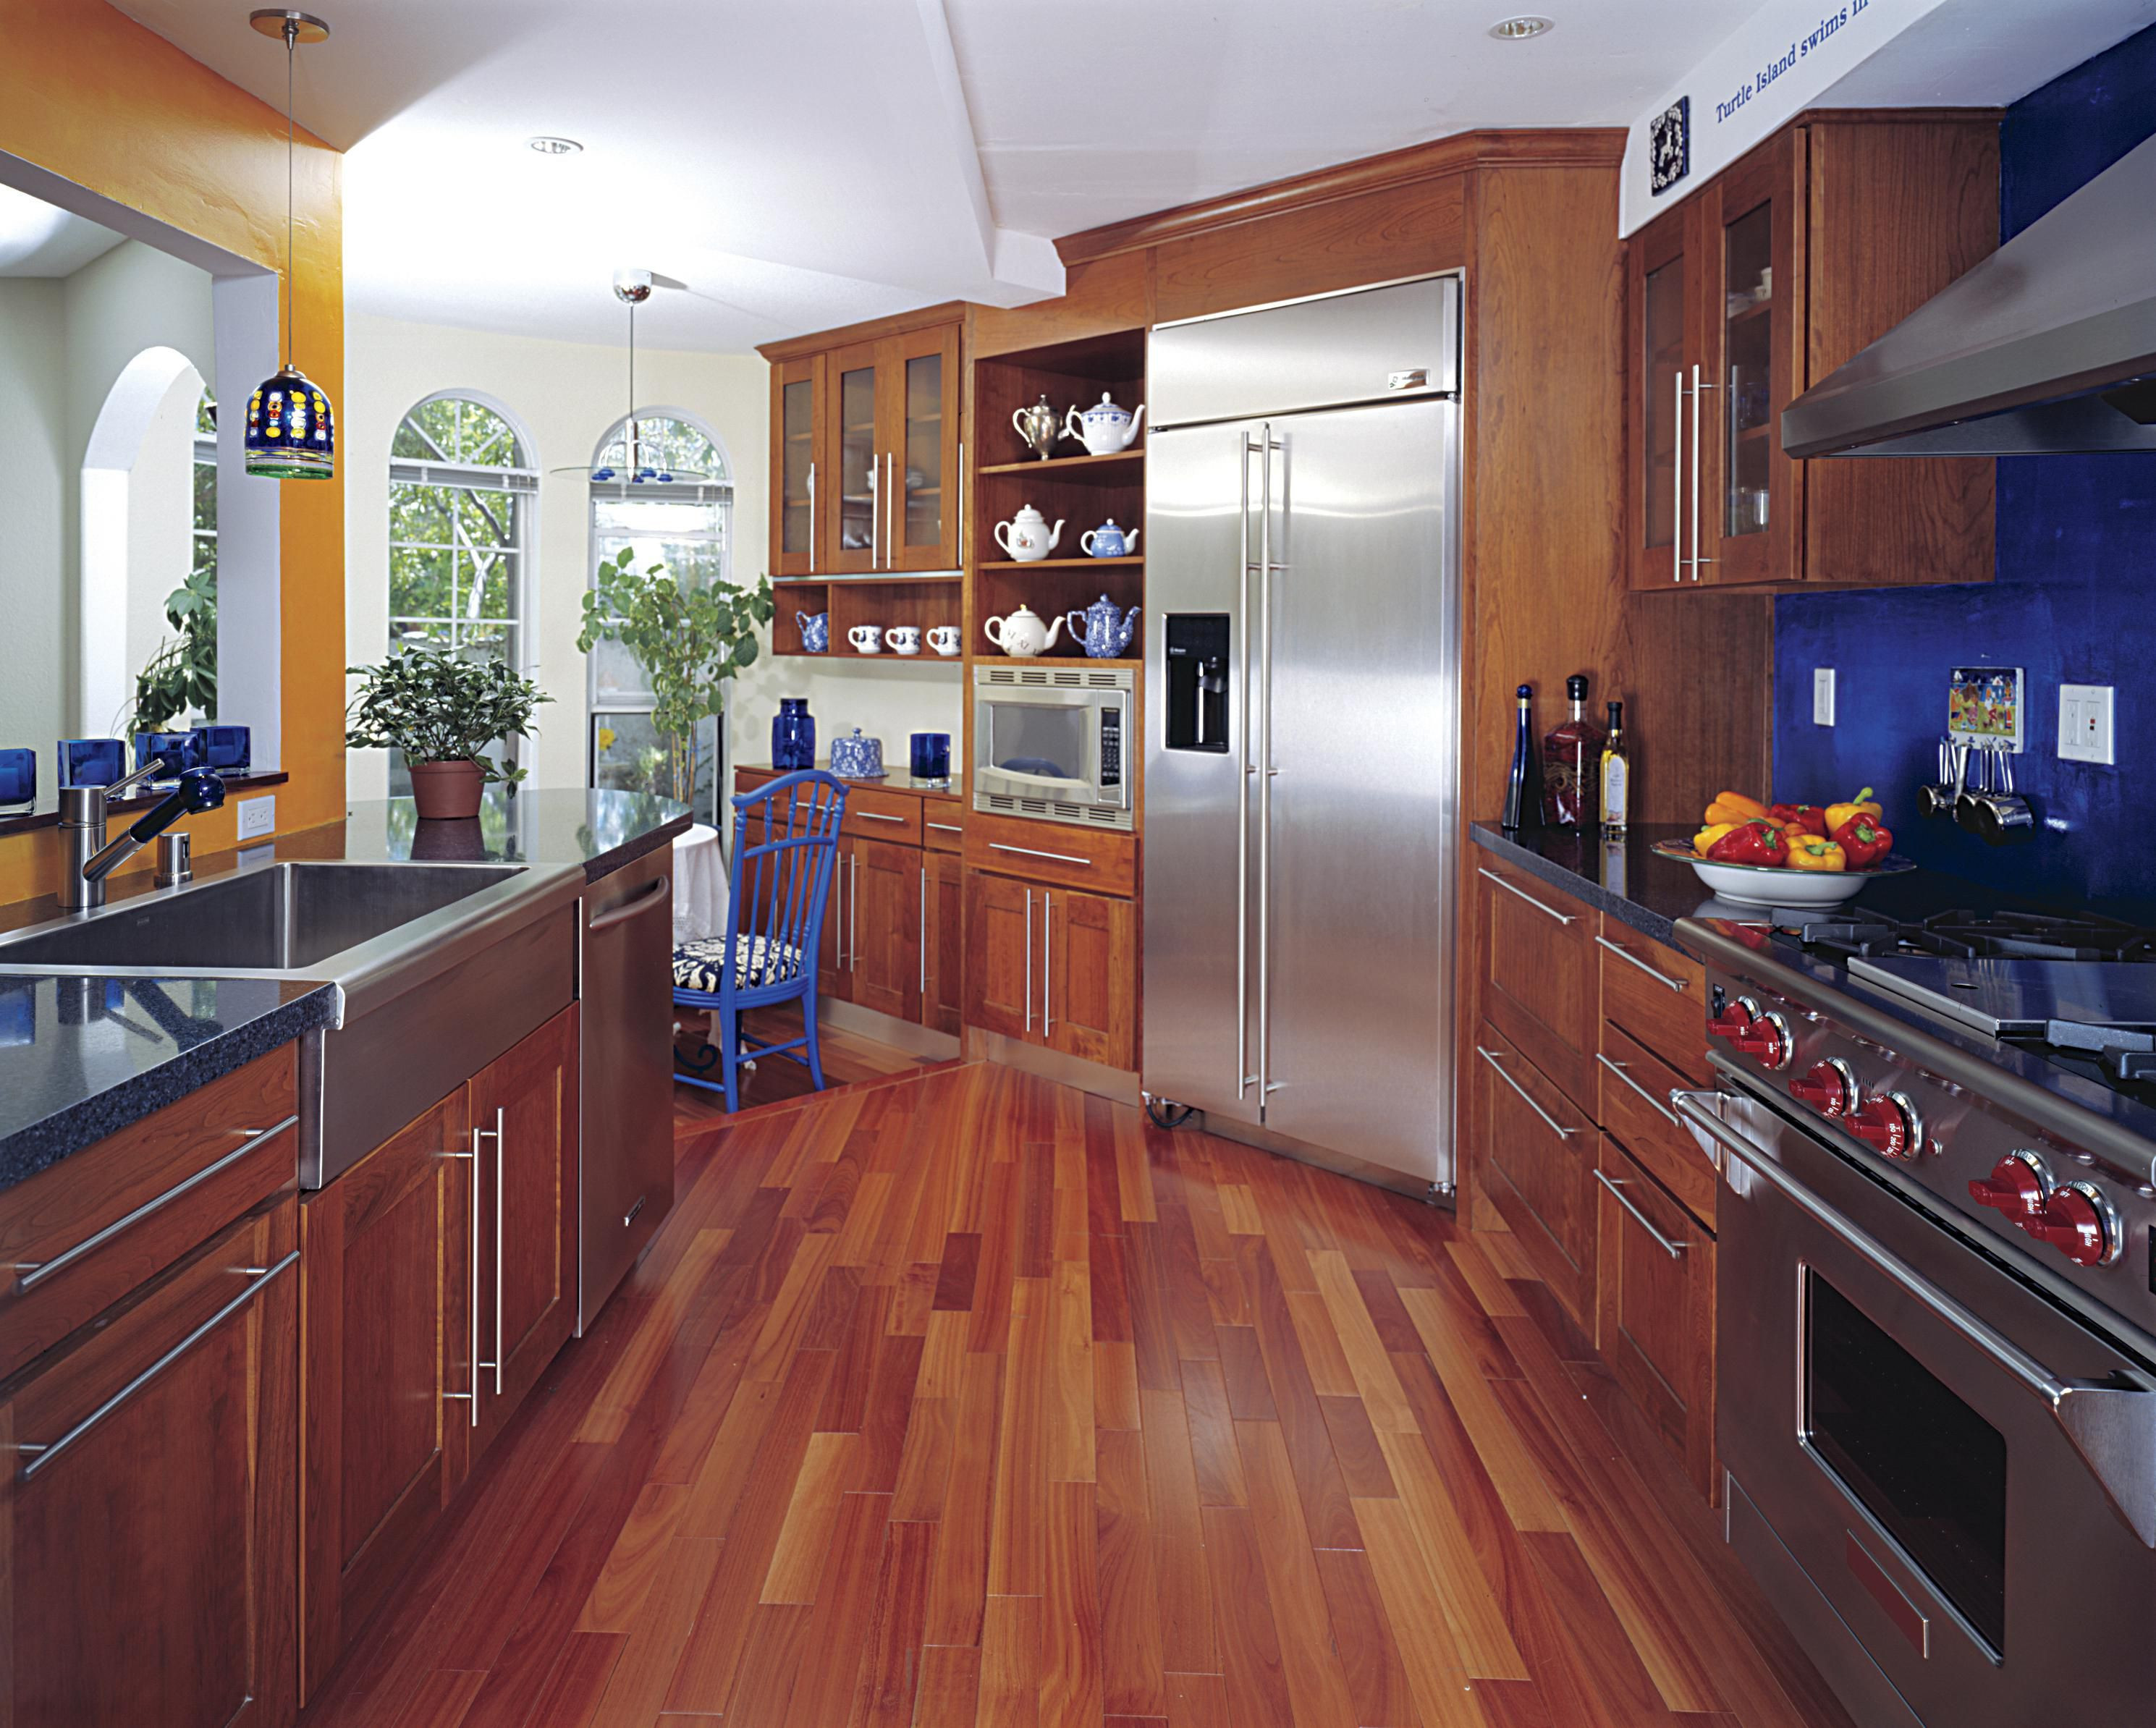 Light Hardwood Floors with Dark Kitchen Cabinets Of Hardwood Floor In A Kitchen is This Allowed Intended for 186828472 56a49f3a5f9b58b7d0d7e142